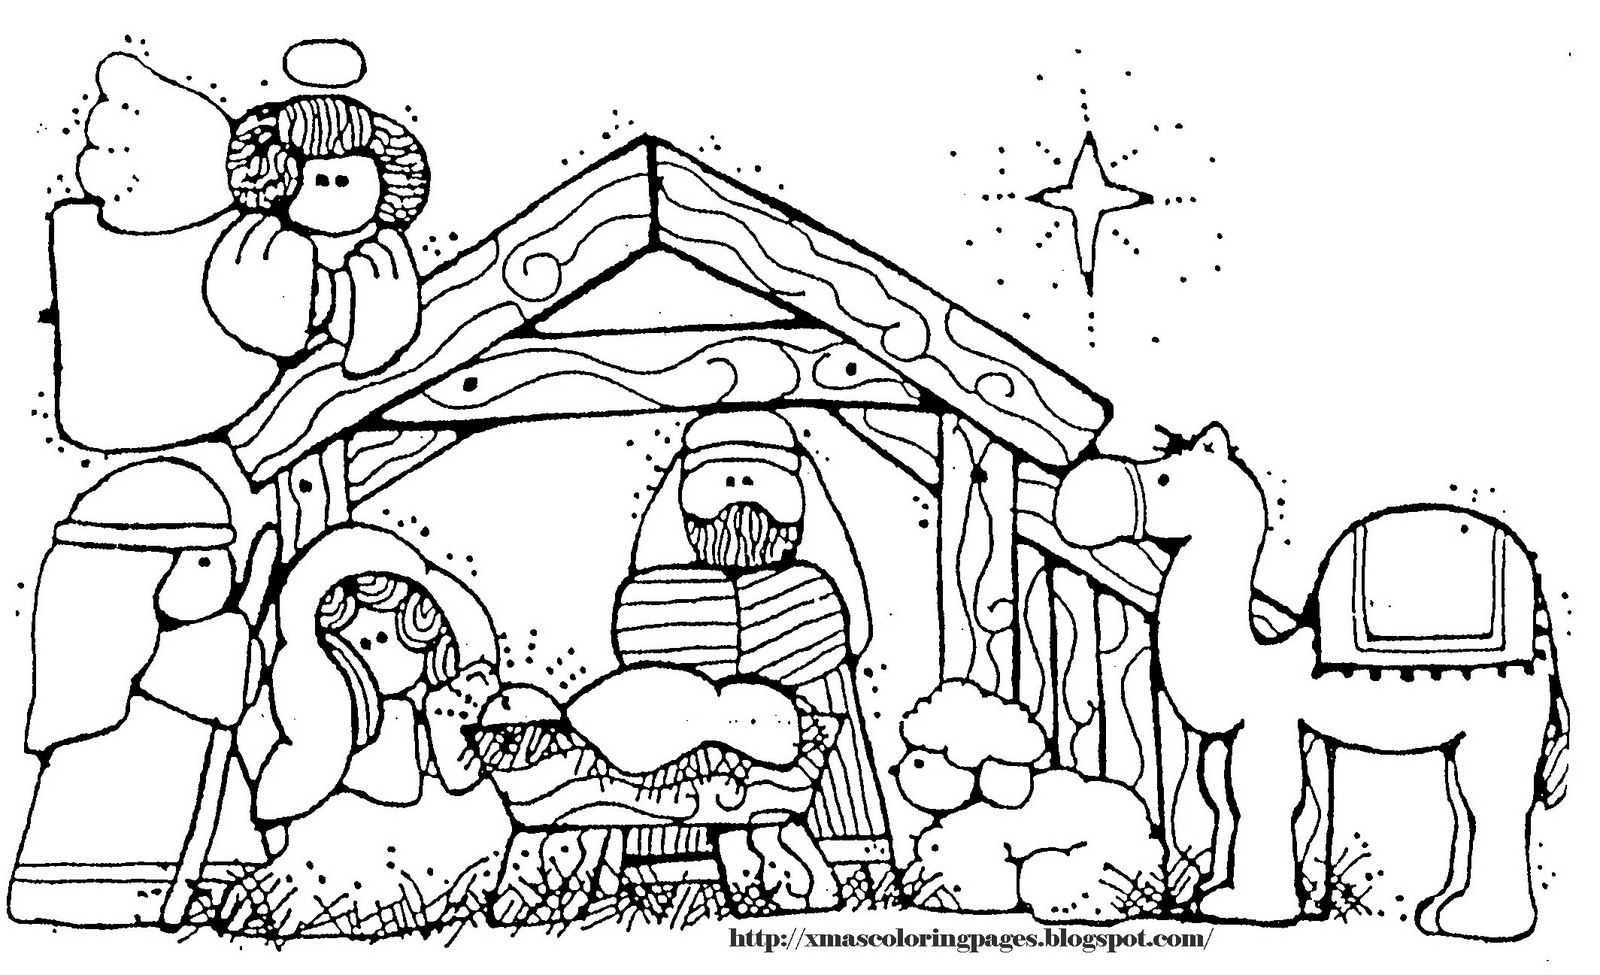 XMAS COLORING PAGES  Jesus coloring pages, Nativity coloring